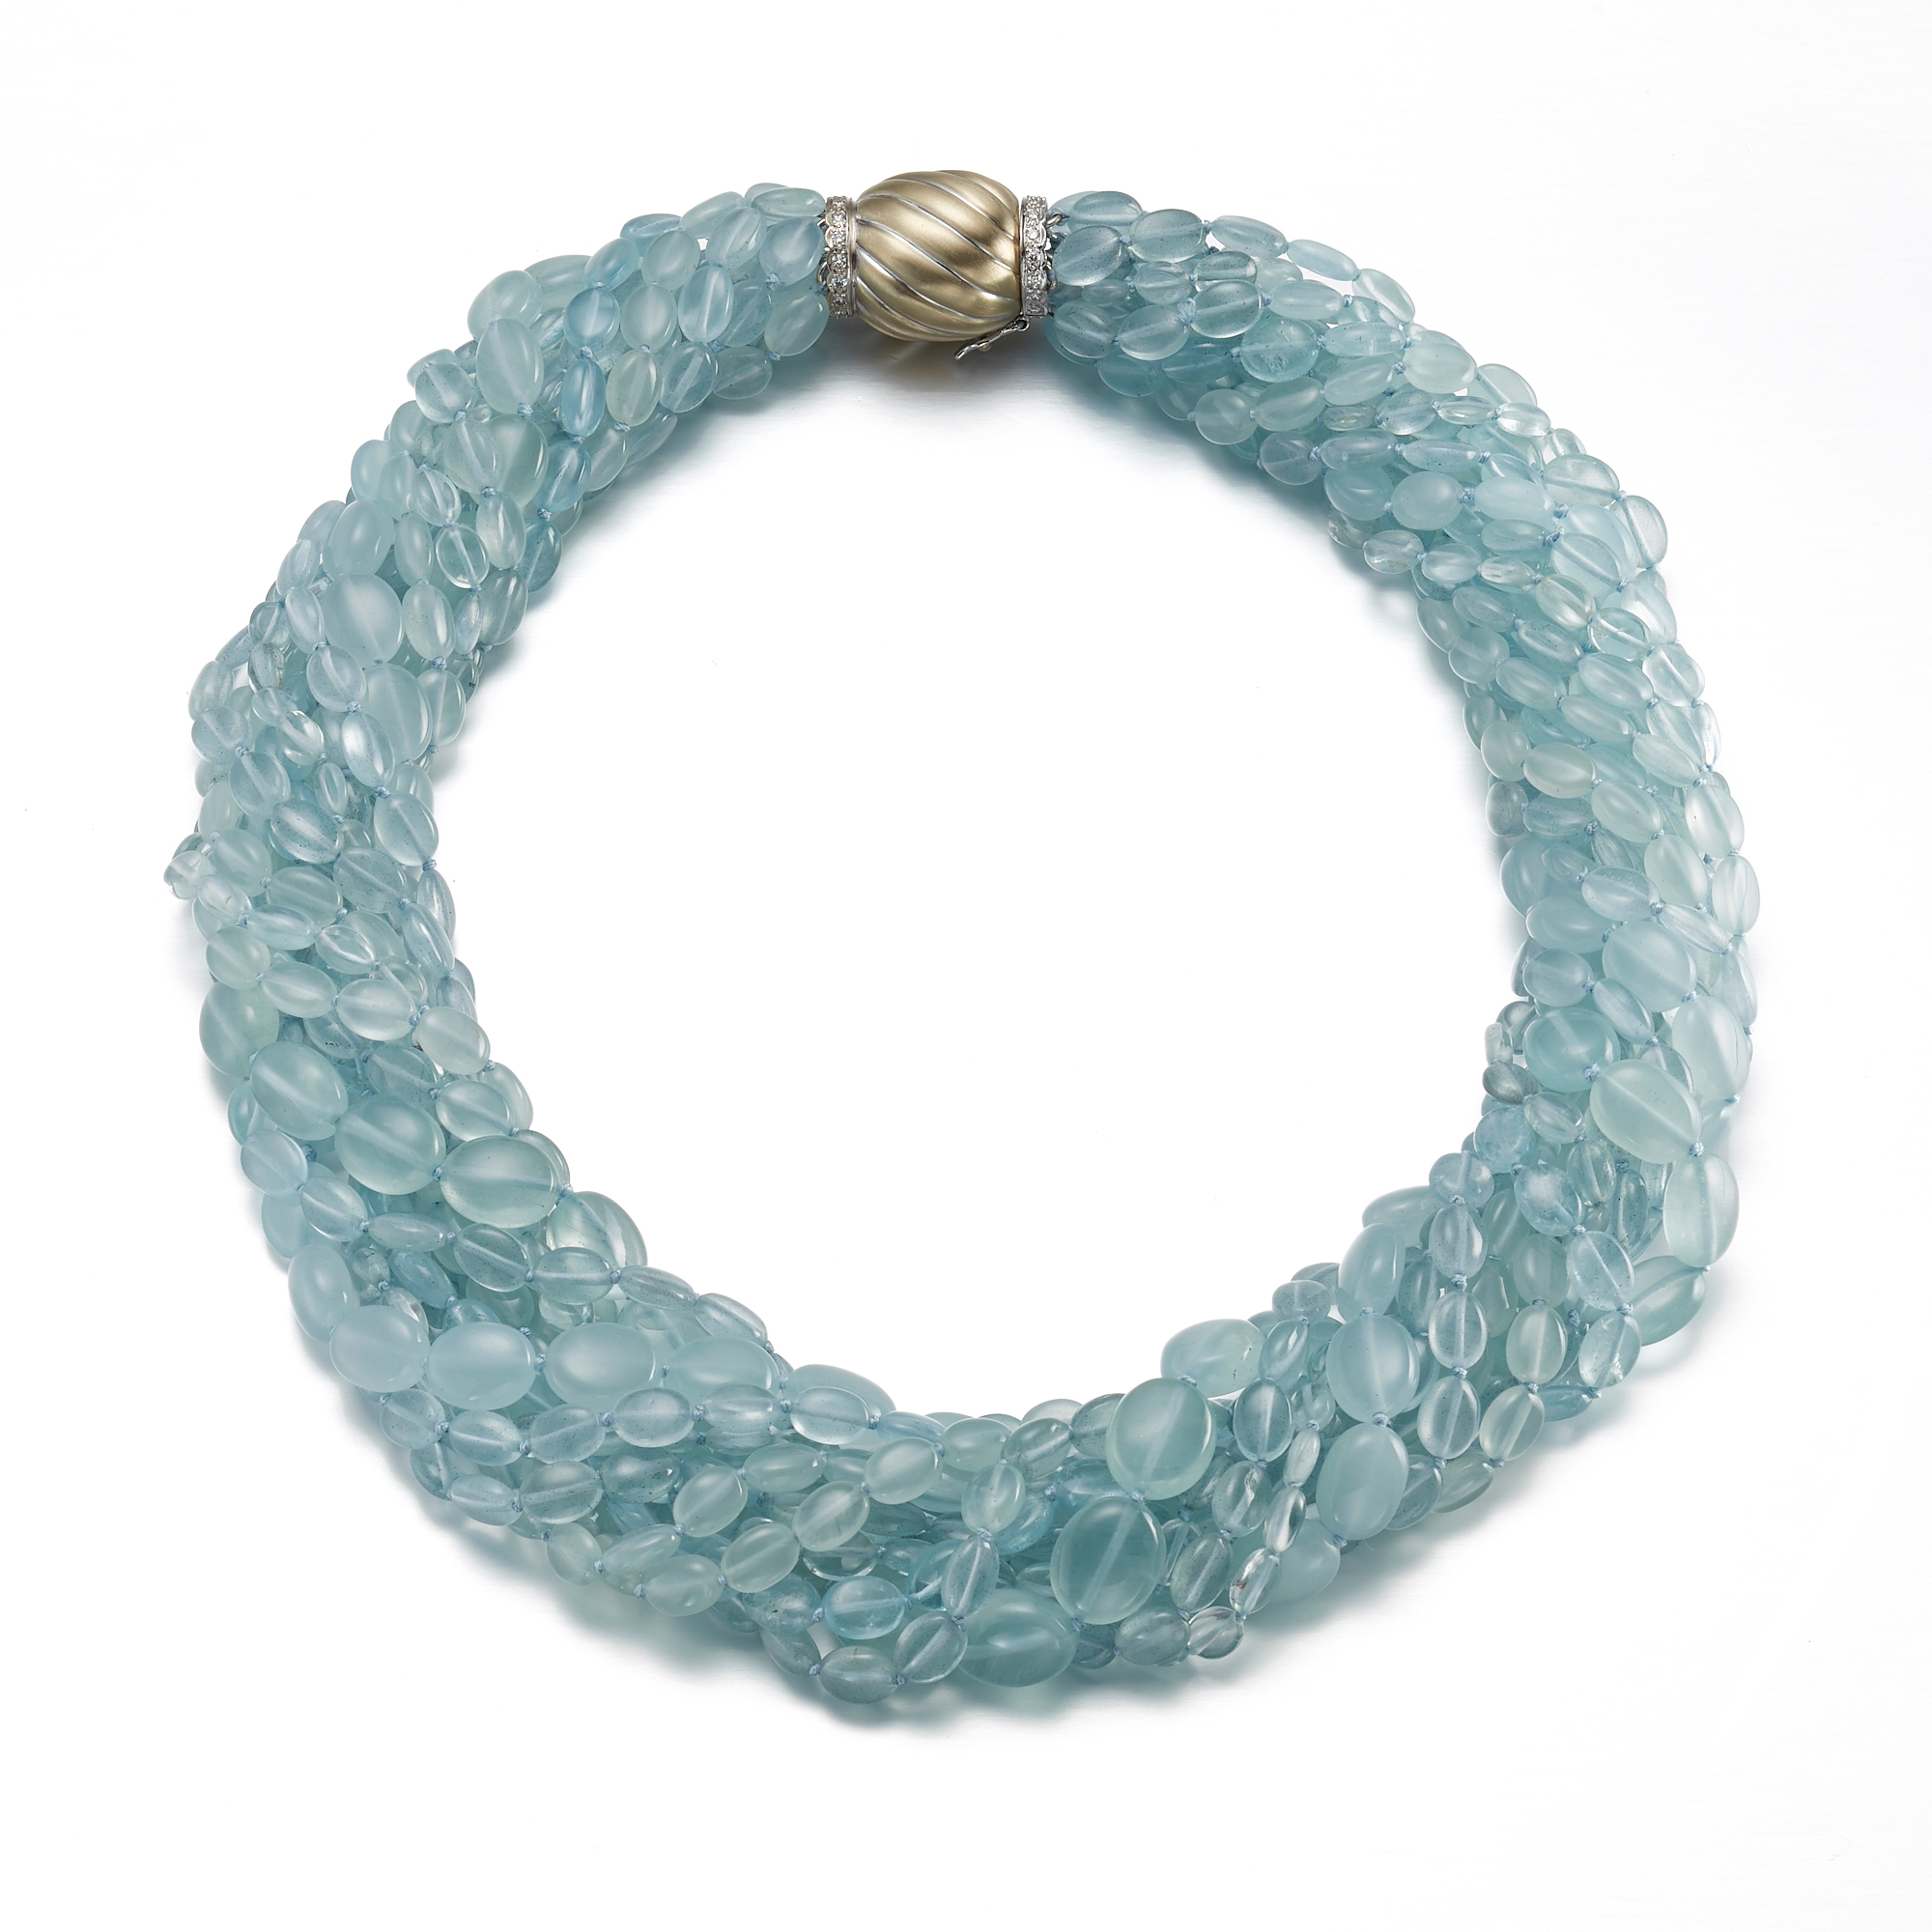 Gump's Multi-Strand Aqua Pebble Necklace